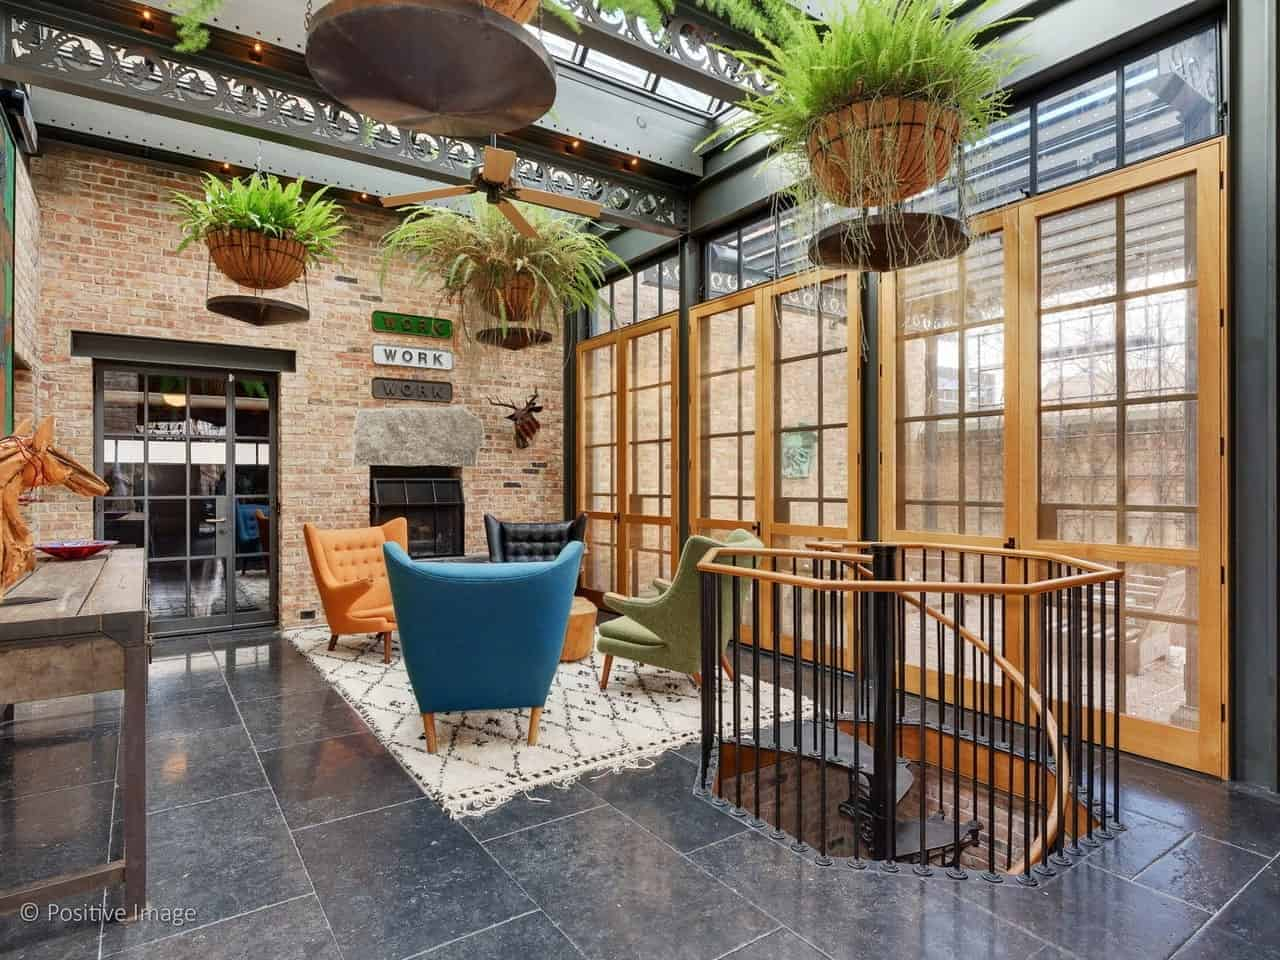 The brightness of this industrial-style living room is due to its glass ceiling with exposed metal beams that has multiple hanging potted plants. It is also due to the glass doors adjacent to the red brick wall that has a fireplace.